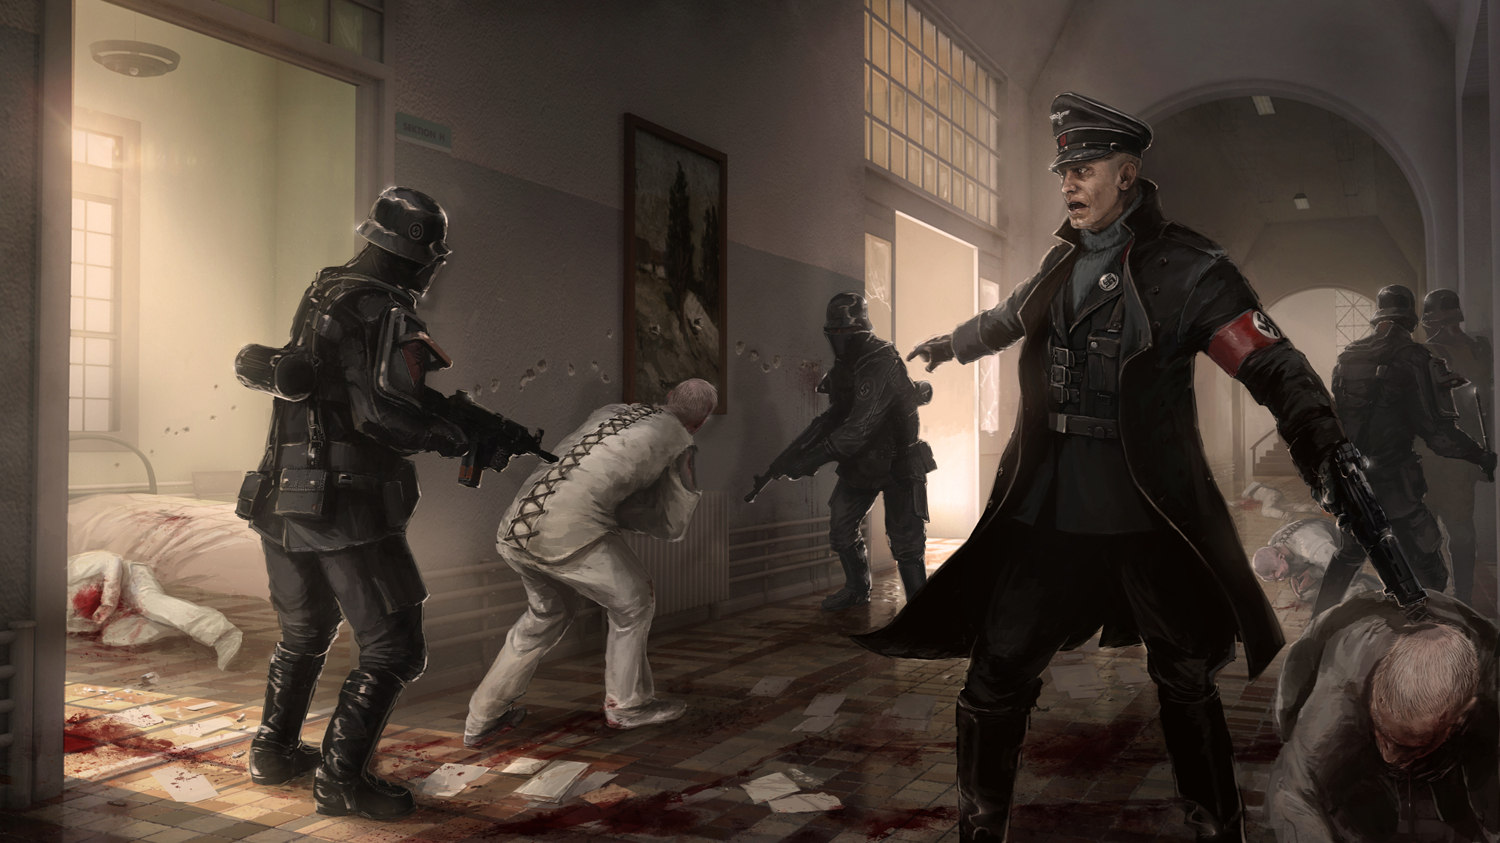 19. WOLFENSTEIN: THE NEW ORDER